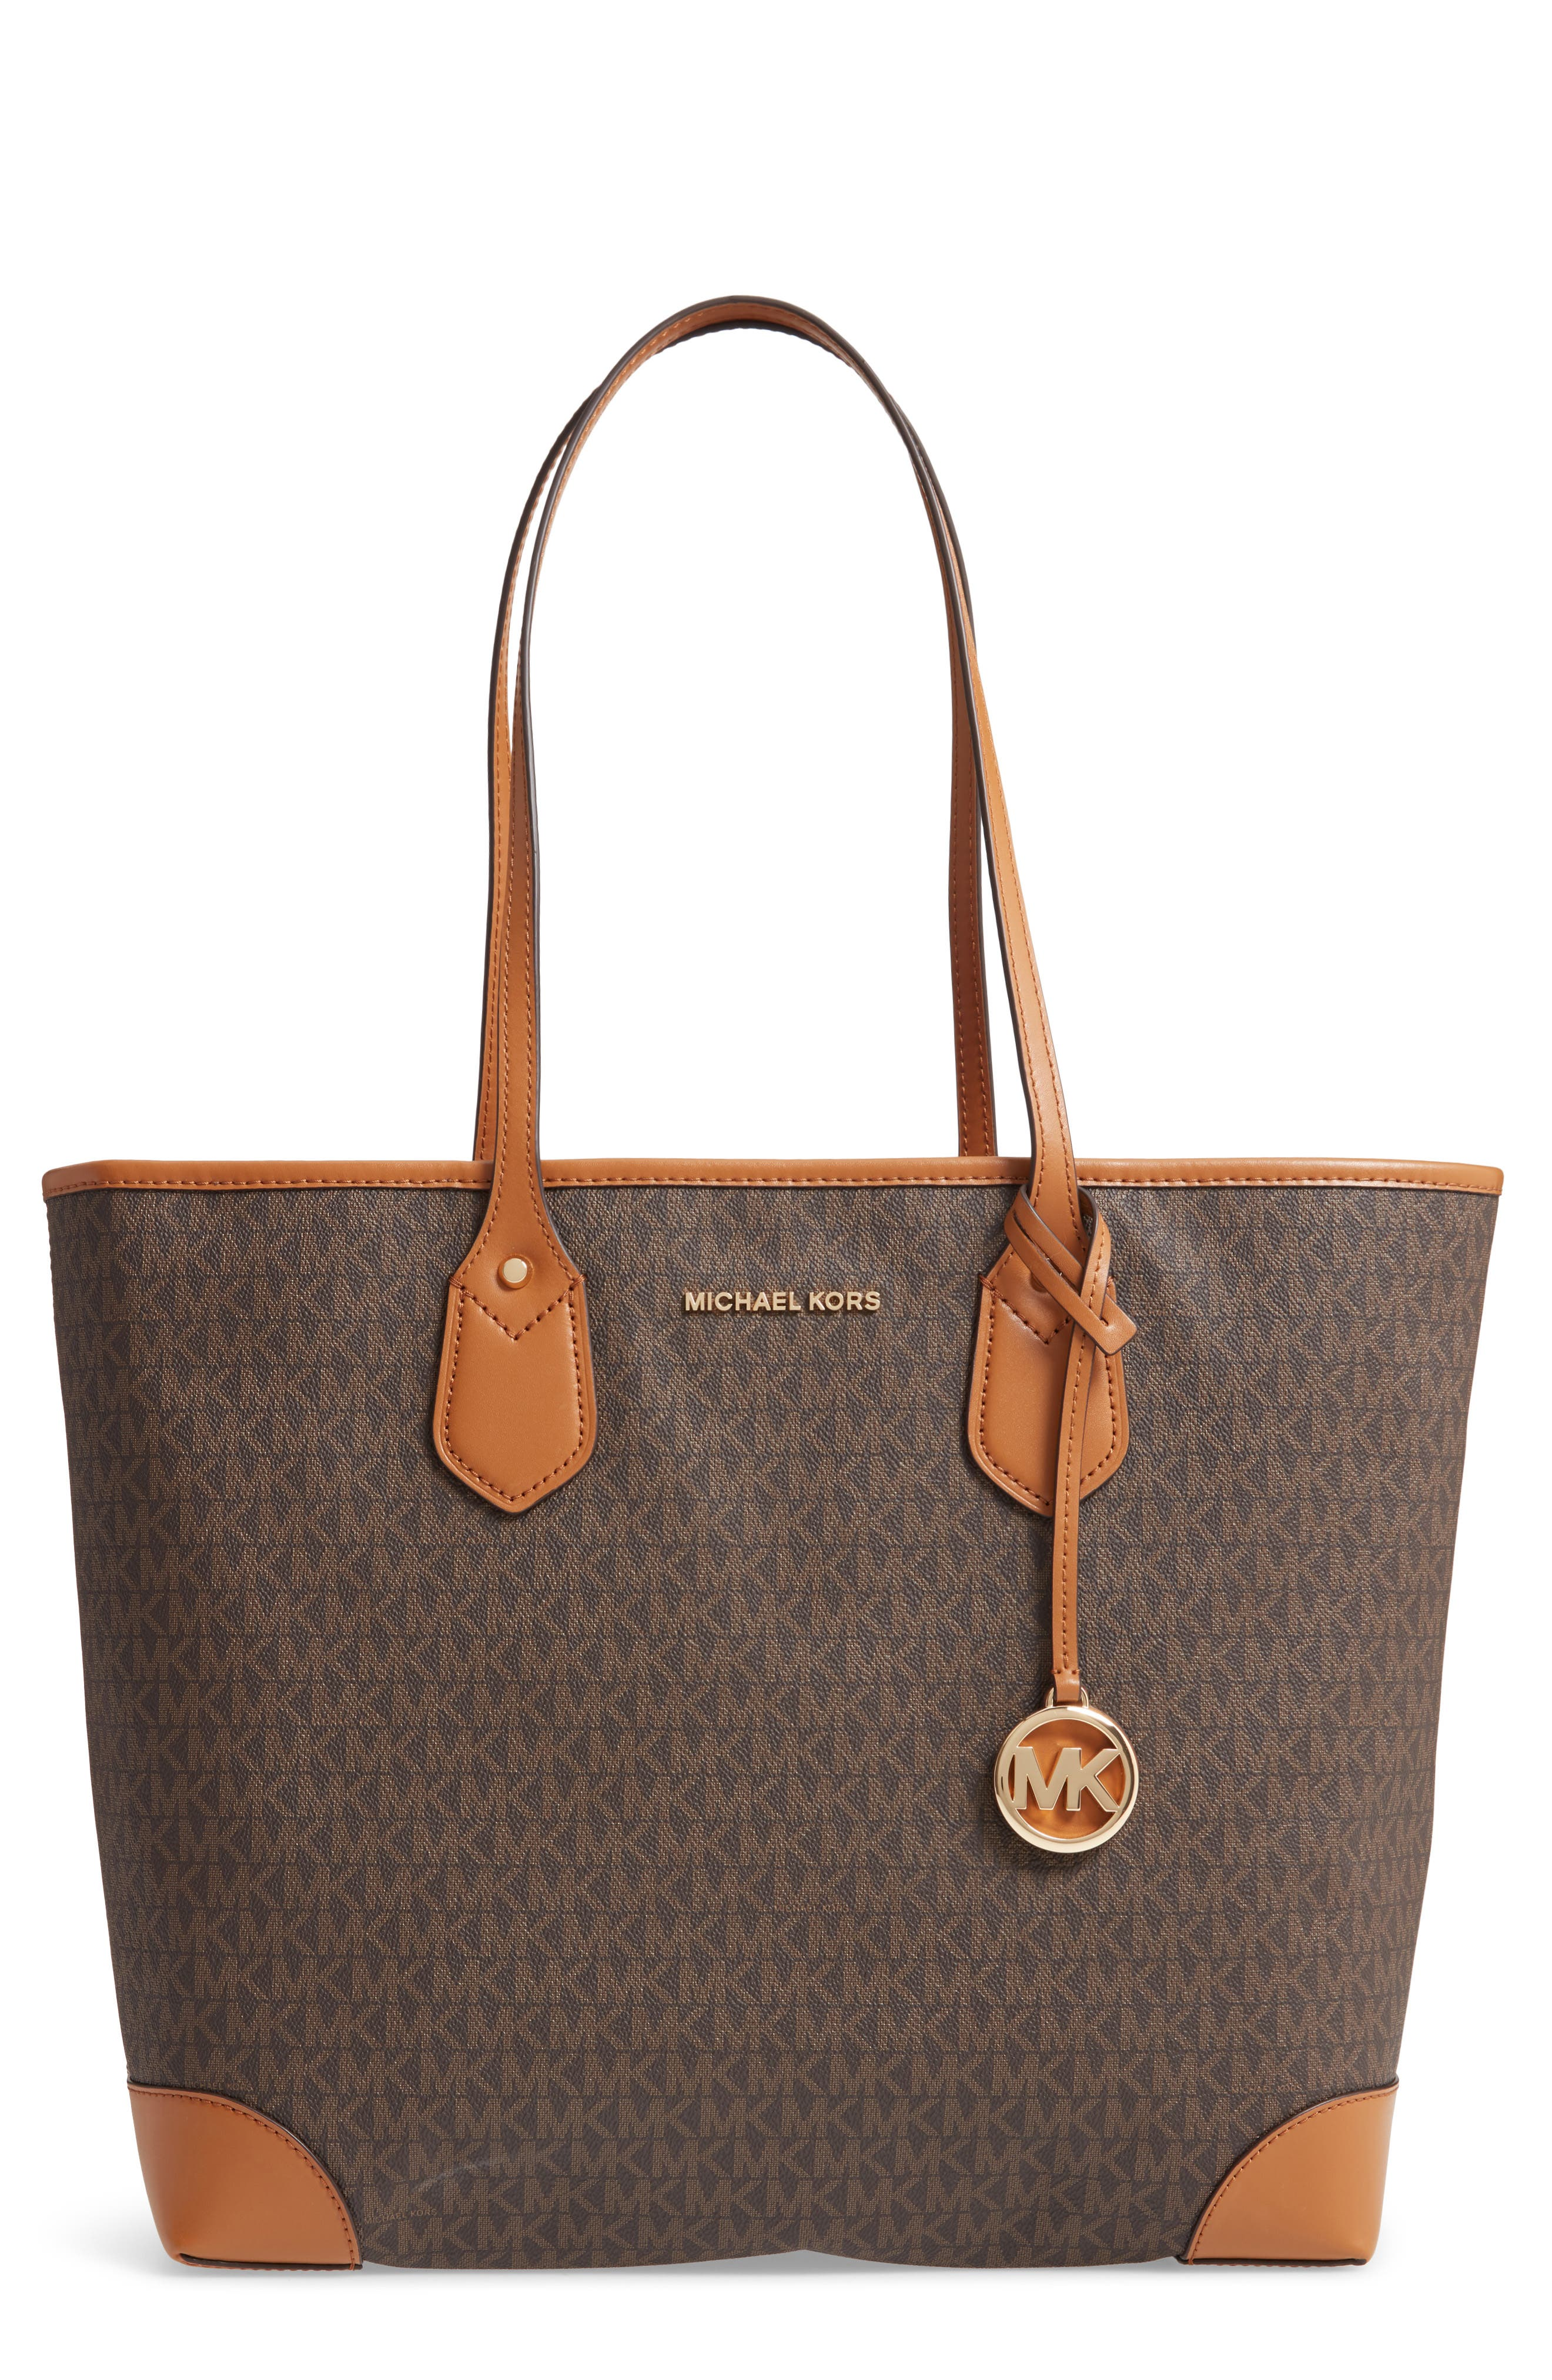 2147a7b46fa33a MICHAEL Michael Kors Tote Bags for Women: Leather, Coated Canvas, &  Neoprene | Nordstrom